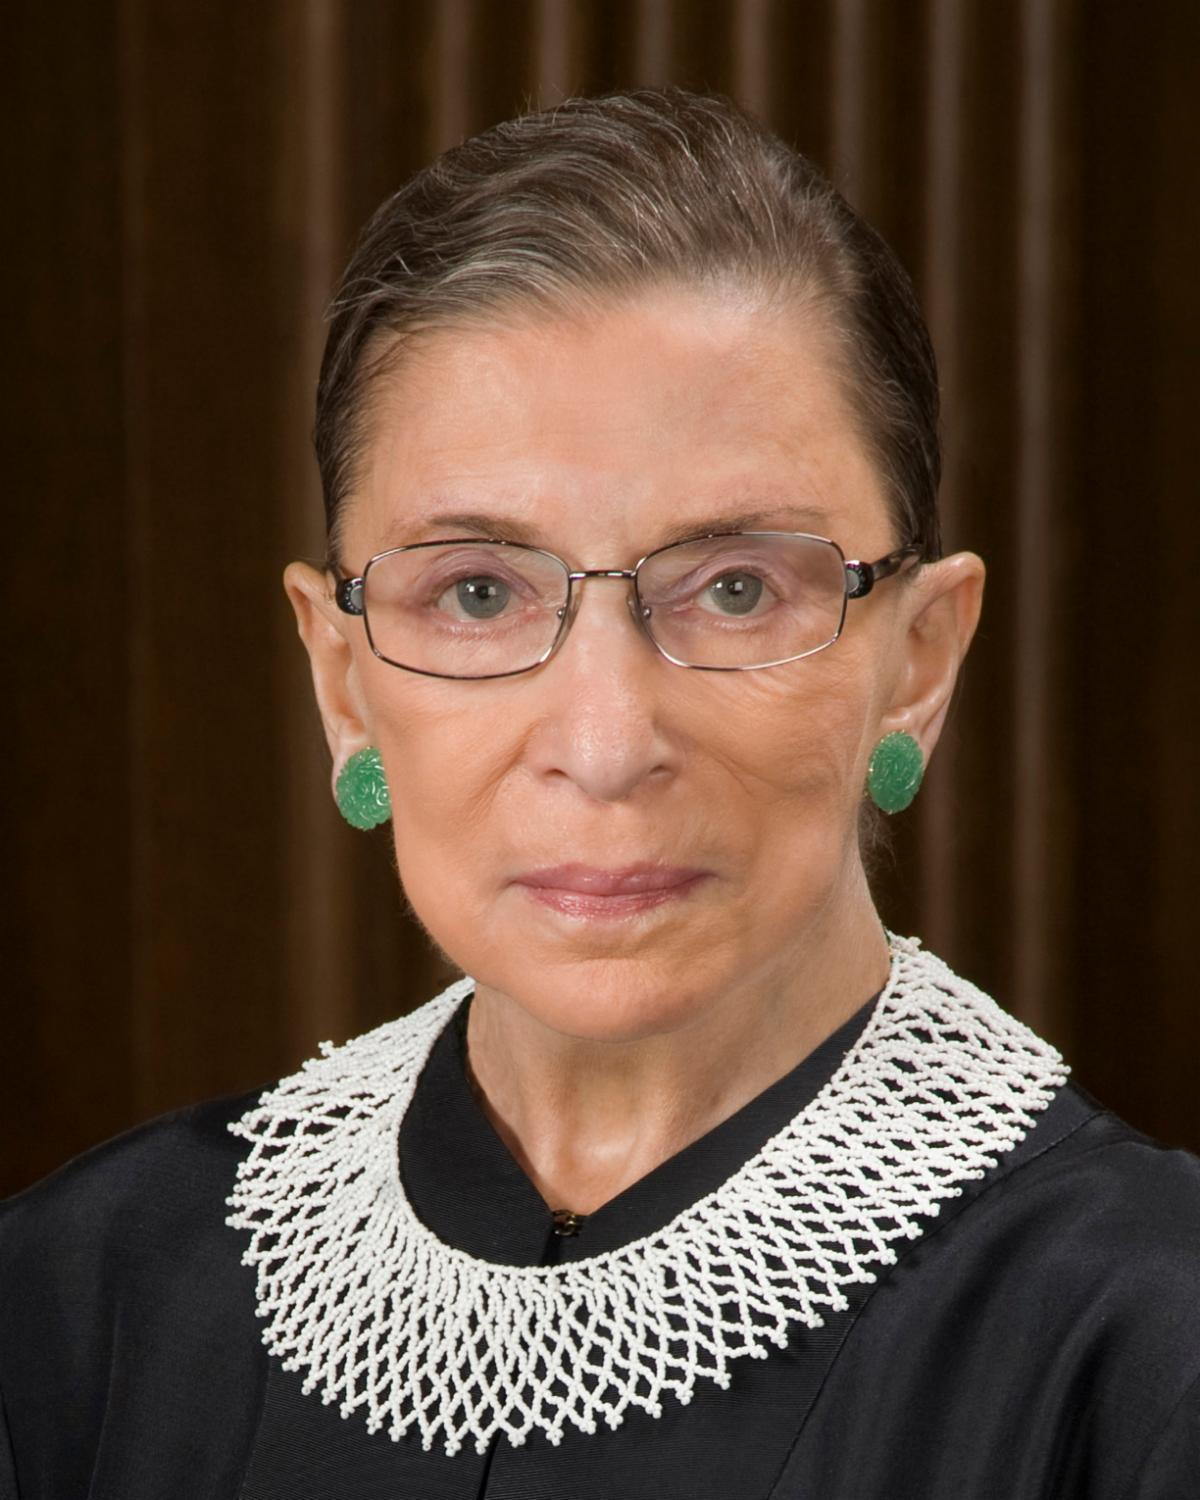 A head shot of Justice Ginsburg